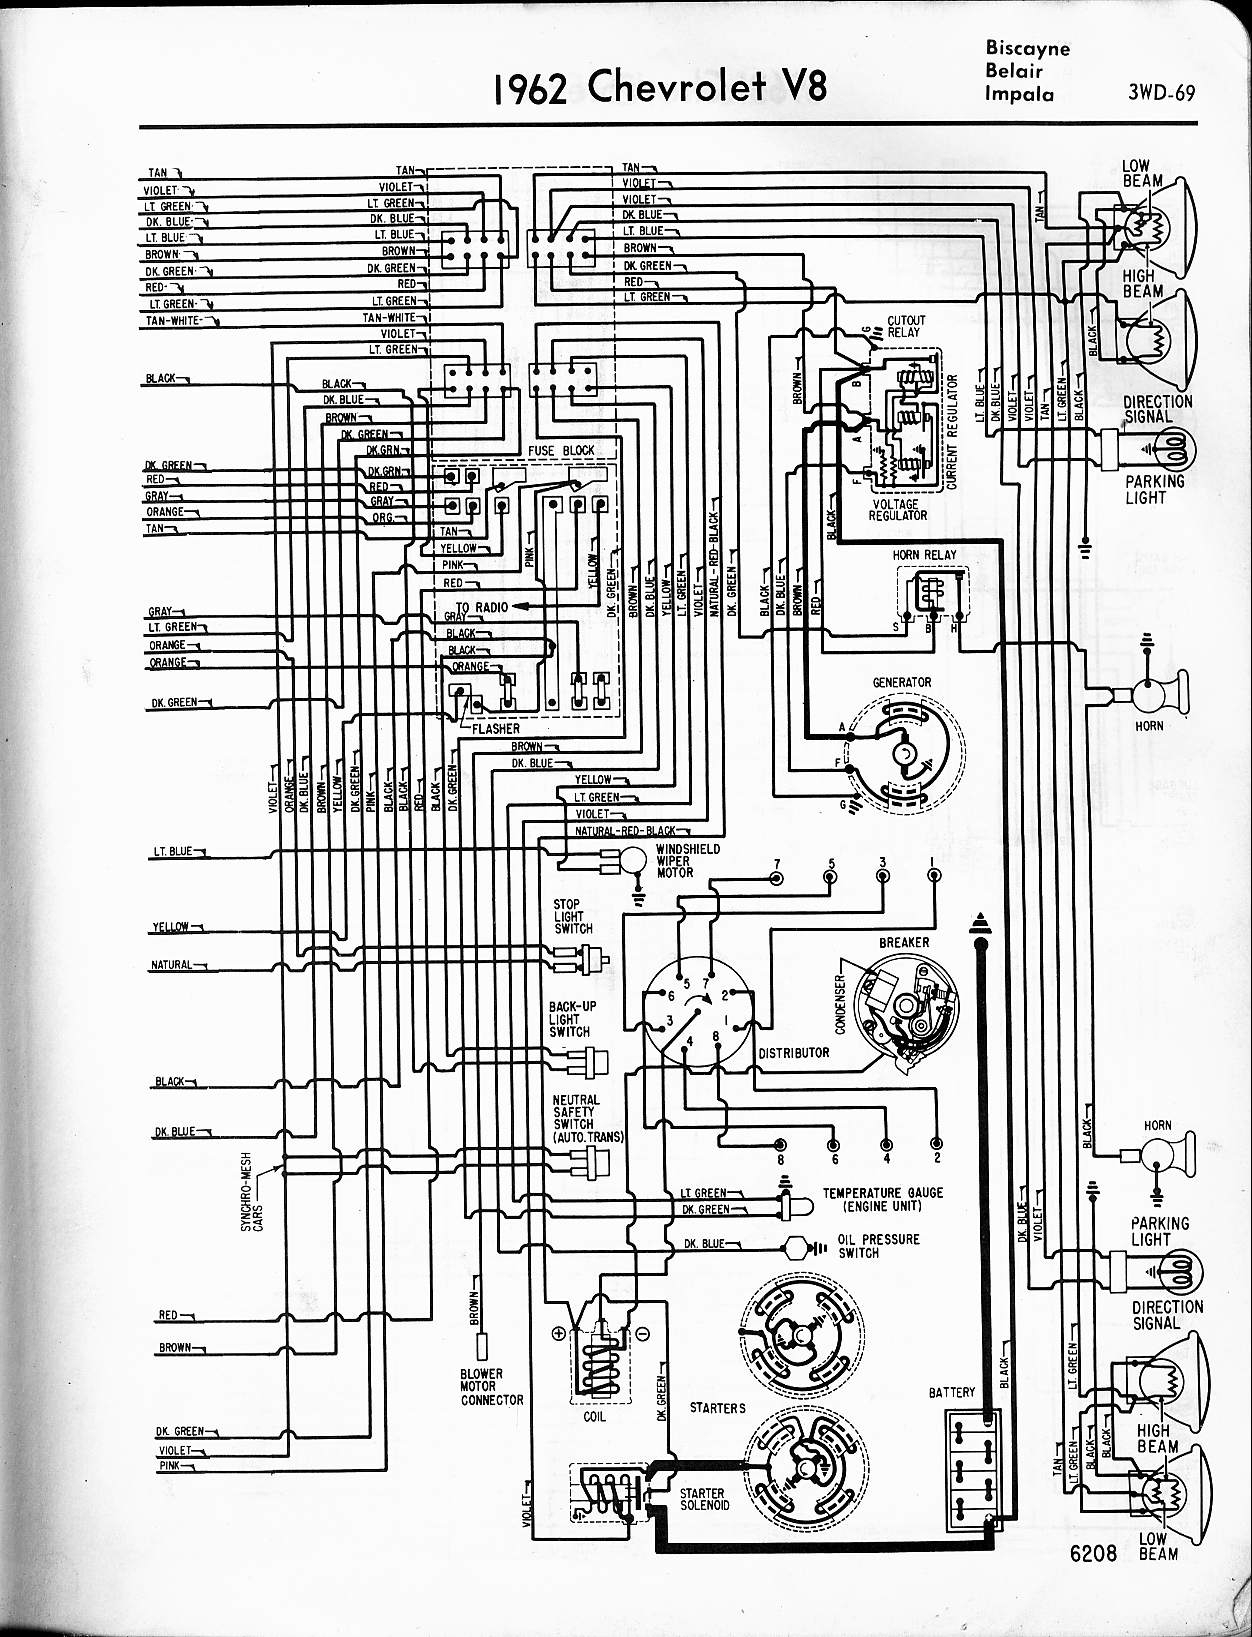 2006 chevy impala wiring diagram Download-2006 Chevy Impala Engine Diagram Inspirational 57 65 Chevy Wiring Diagrams 17-r